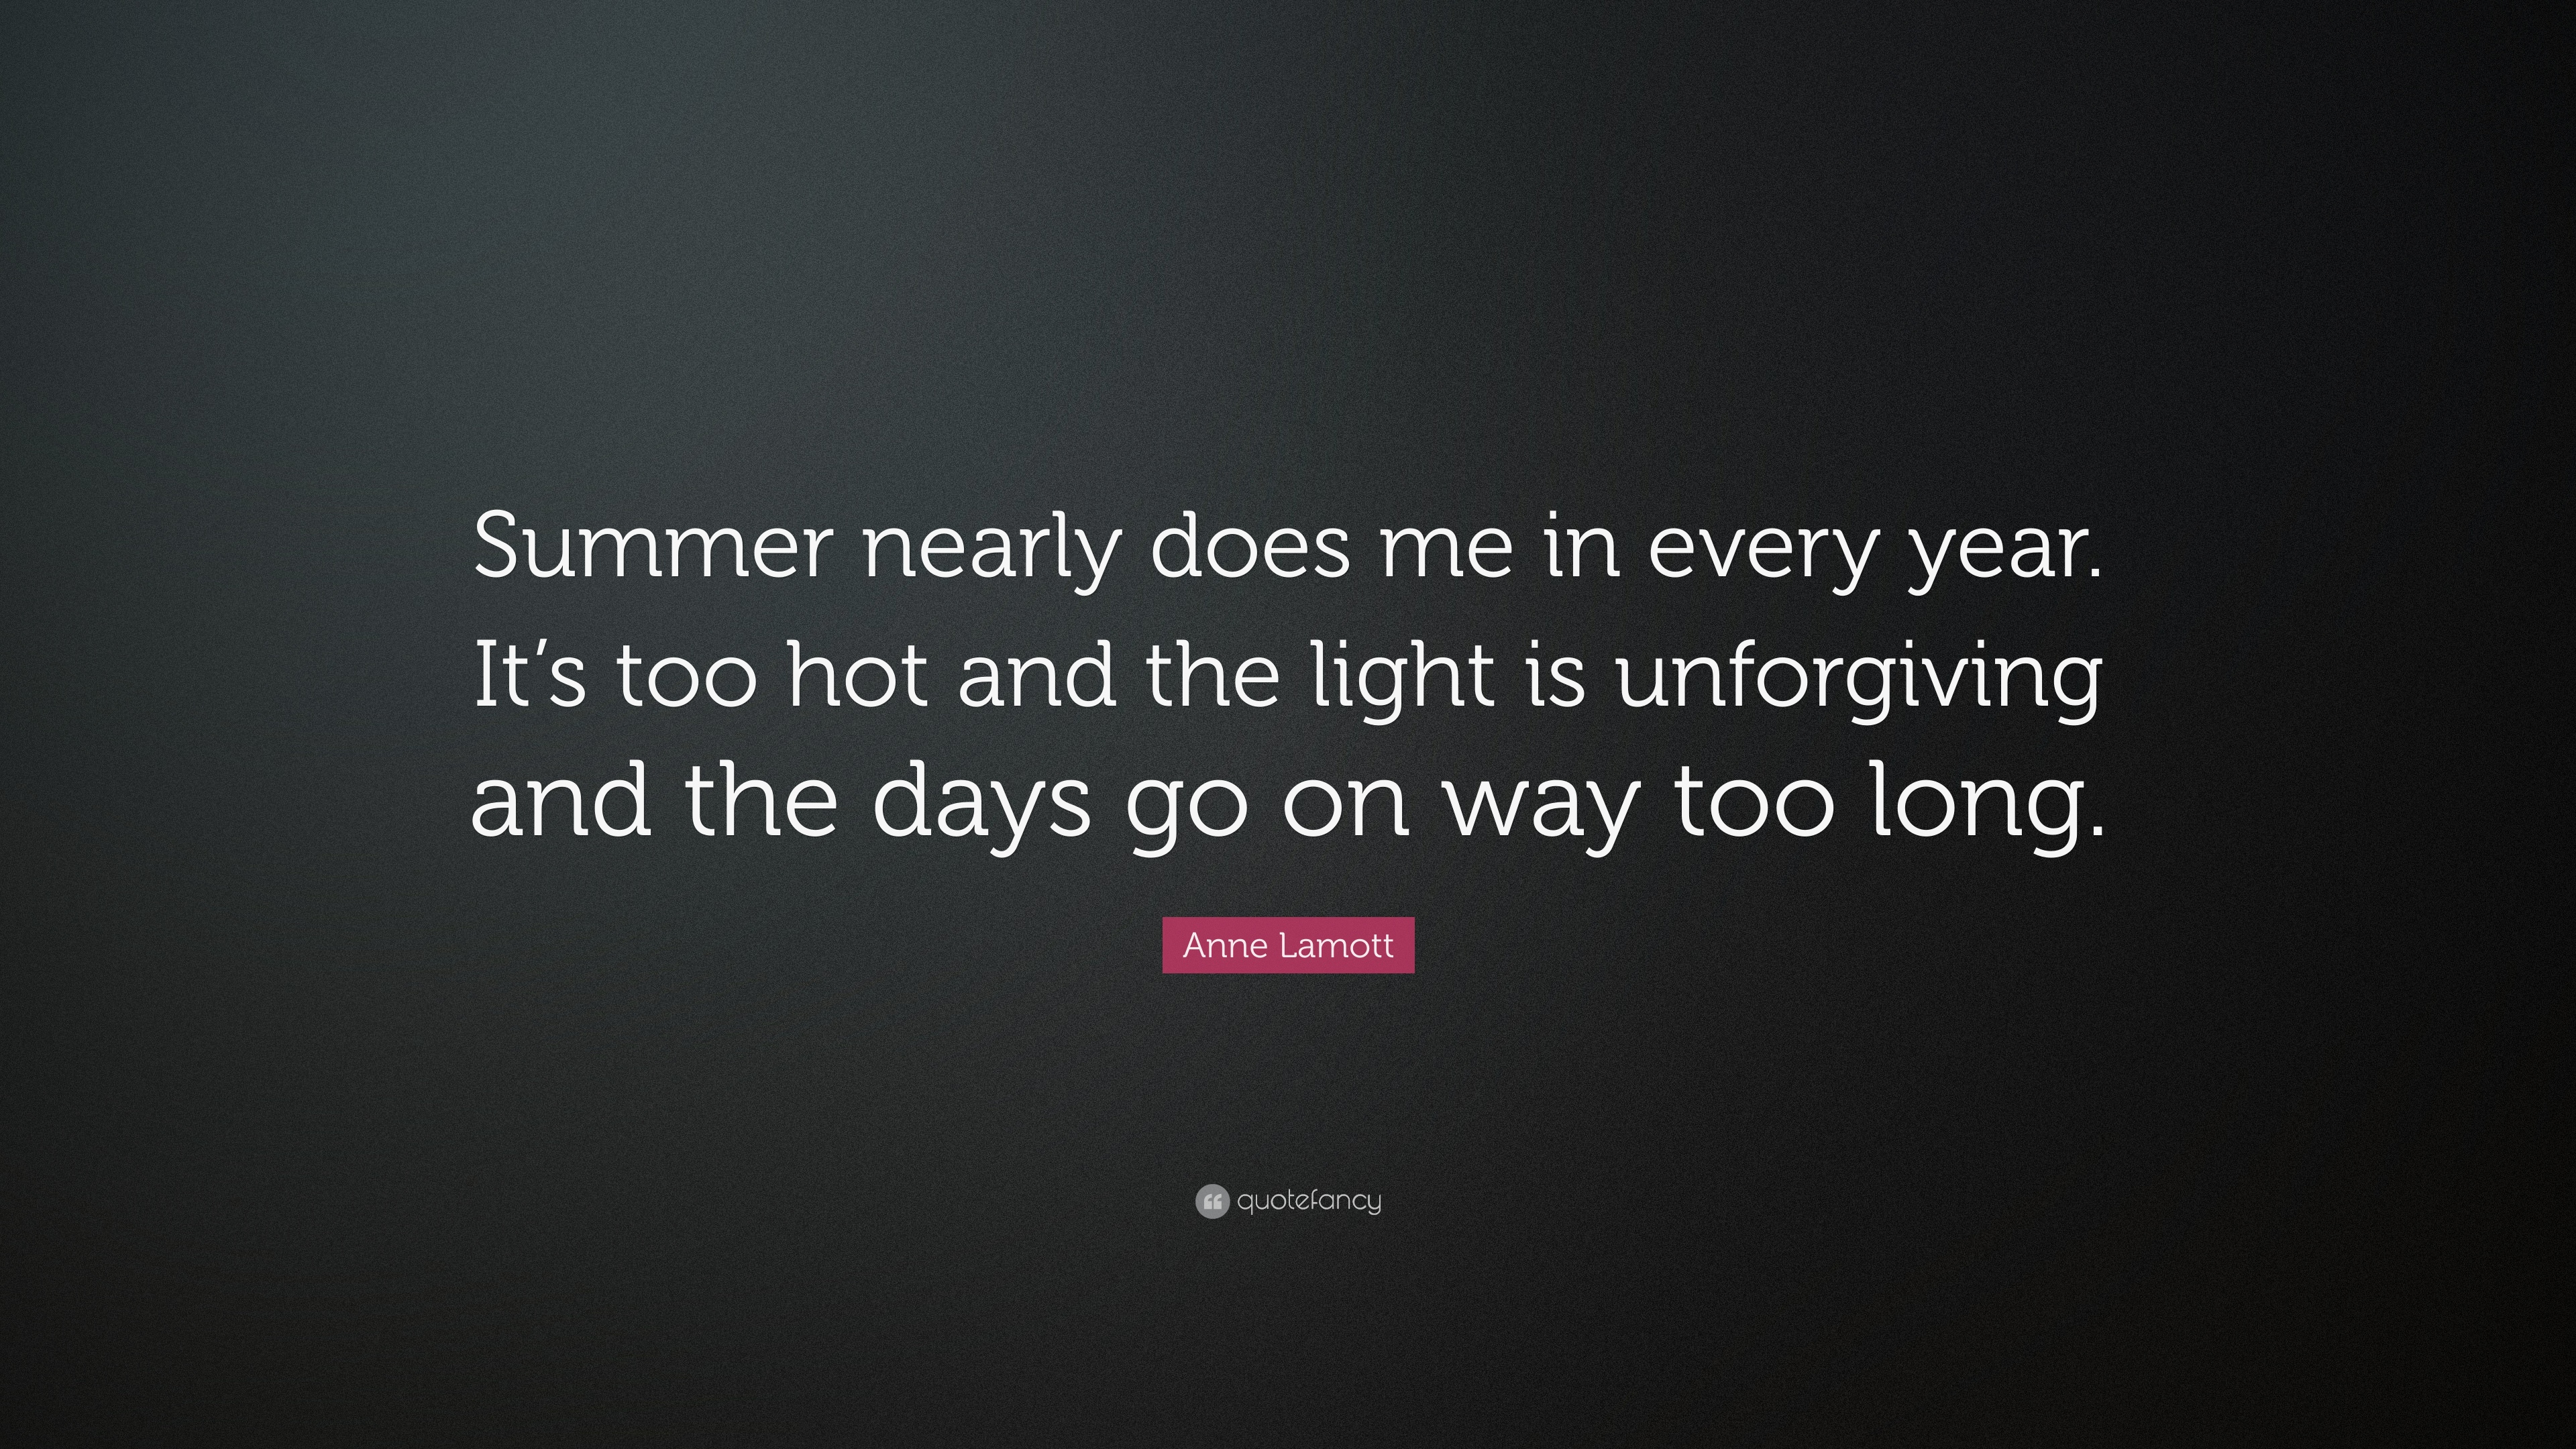 Beau Anne Lamott Quote: U201cSummer Nearly Does Me In Every Year. Itu0027s Too Hot